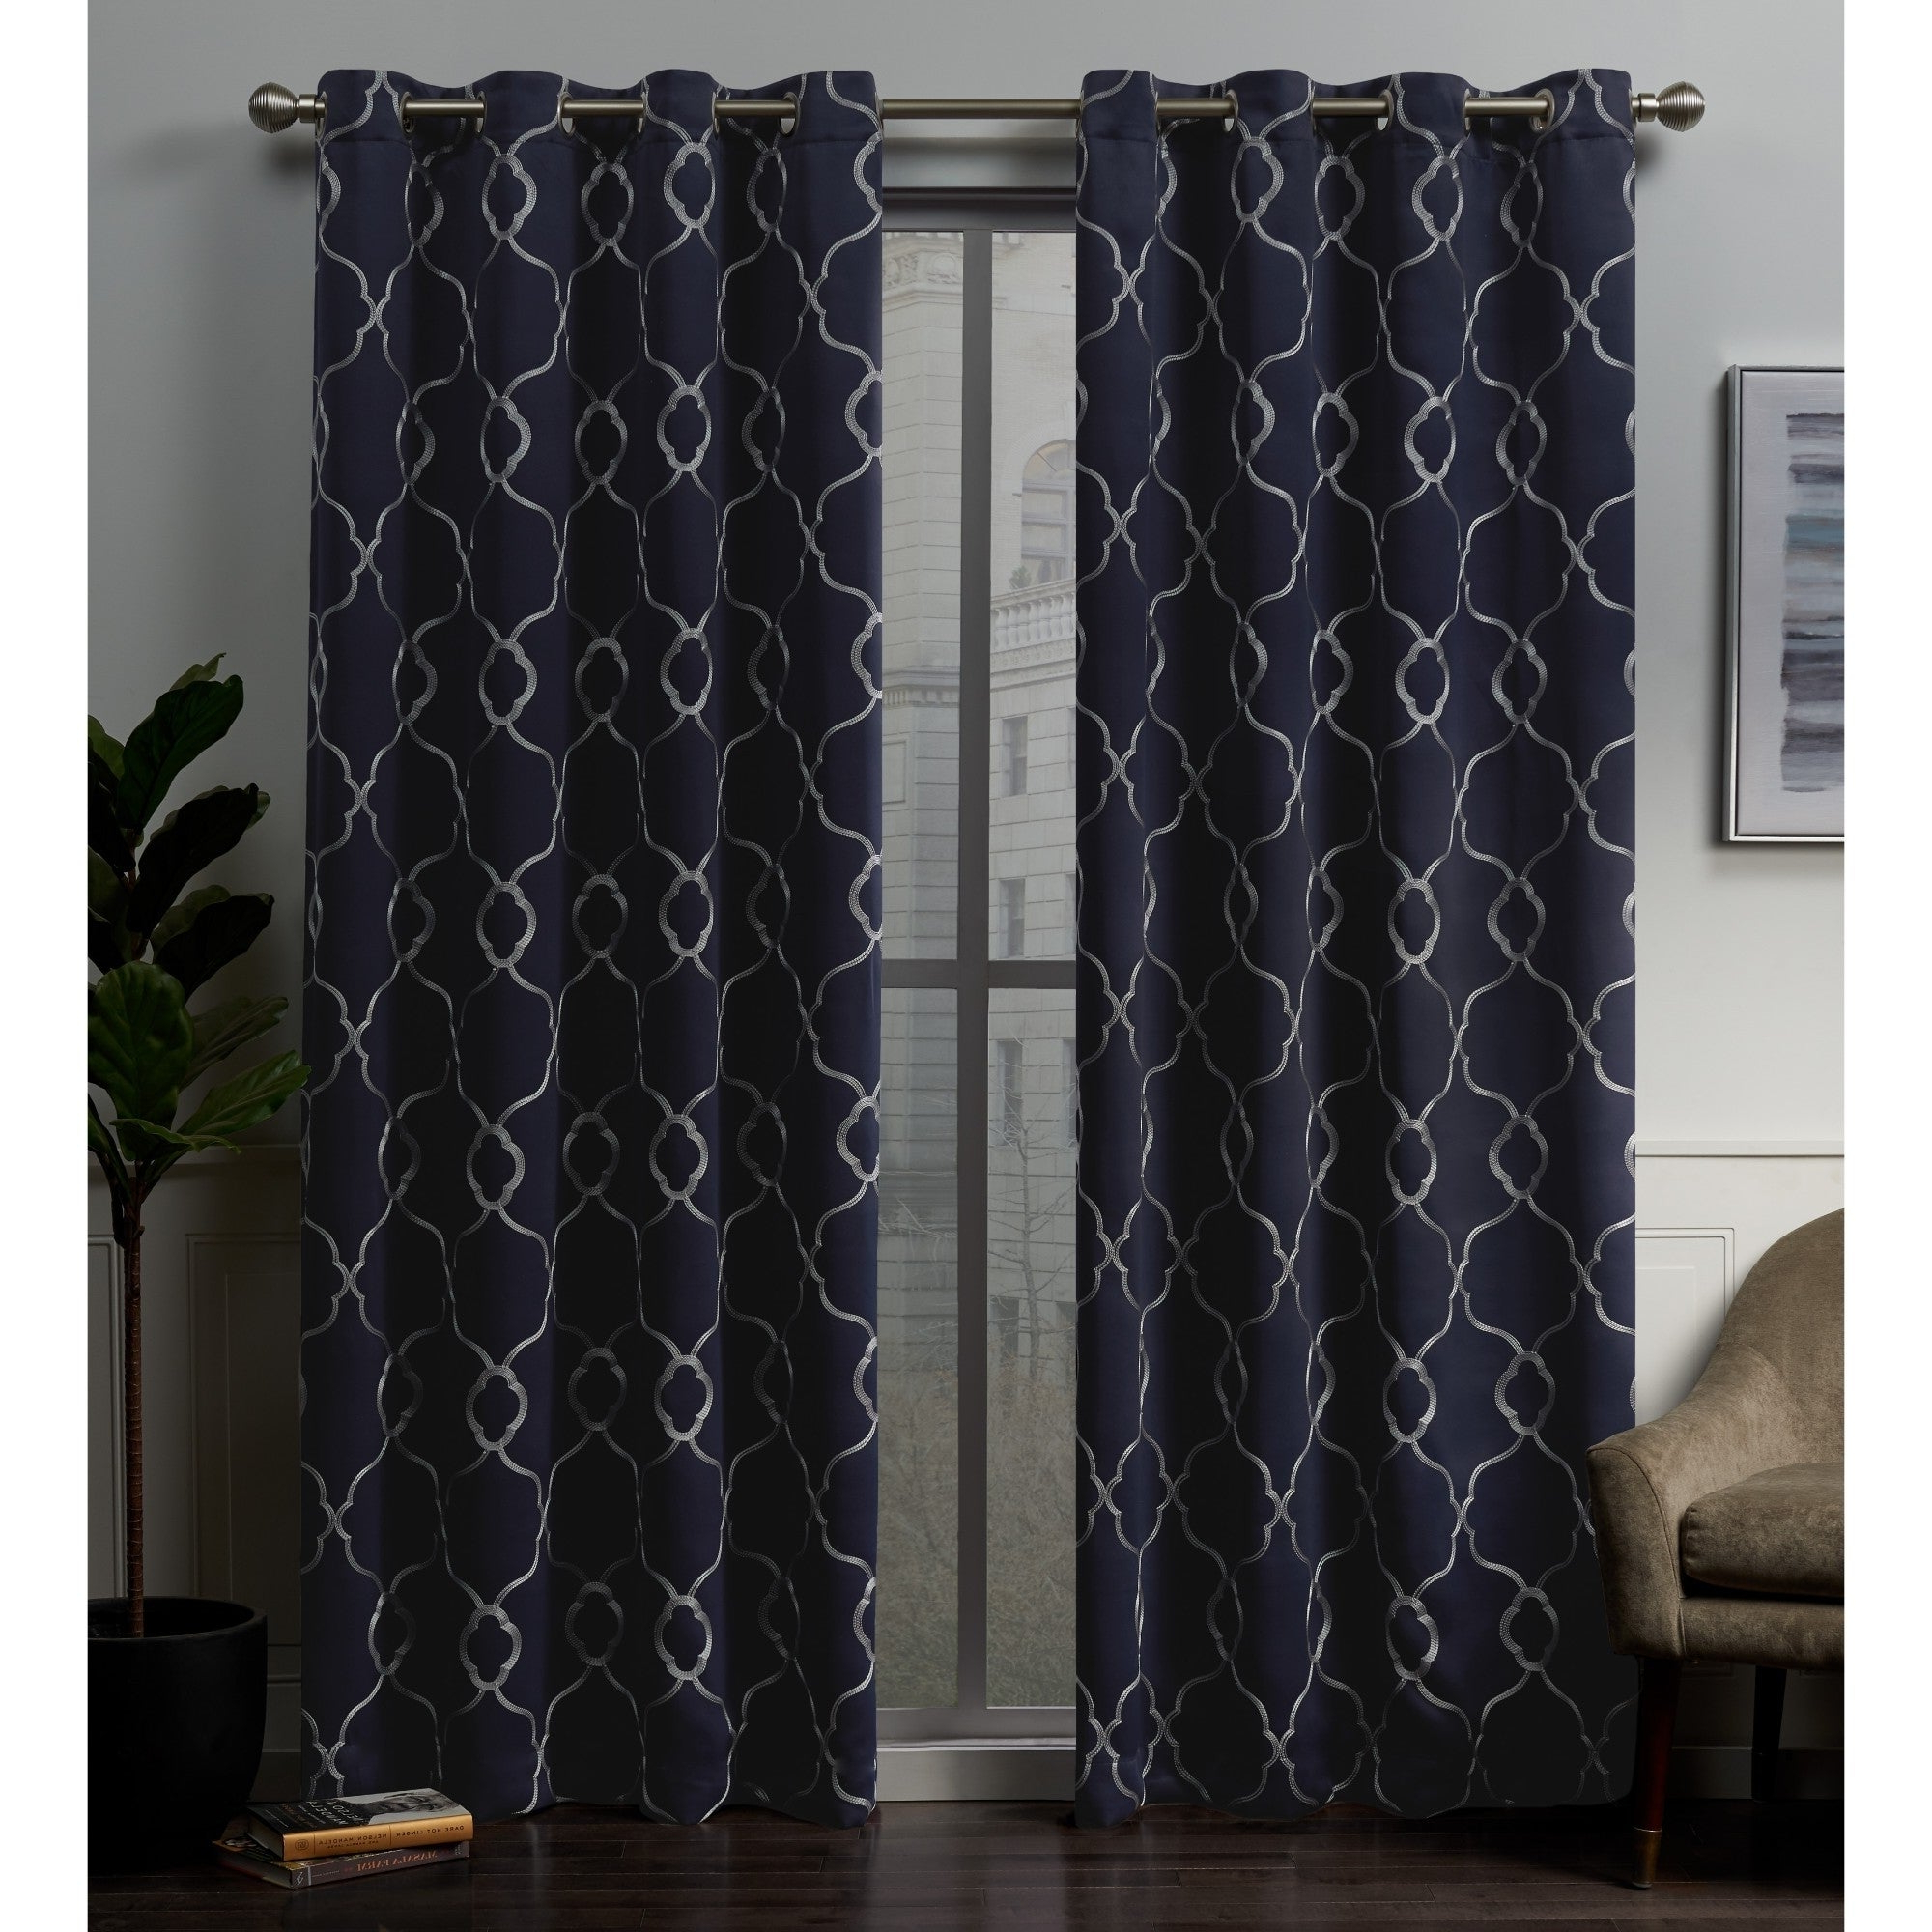 Well Known Ati Home Belmont Woven Blackout Grommet Top Curtain Panel Pair Within Sateen Woven Blackout Curtain Panel Pairs With Pinch Pleat Top (View 19 of 20)